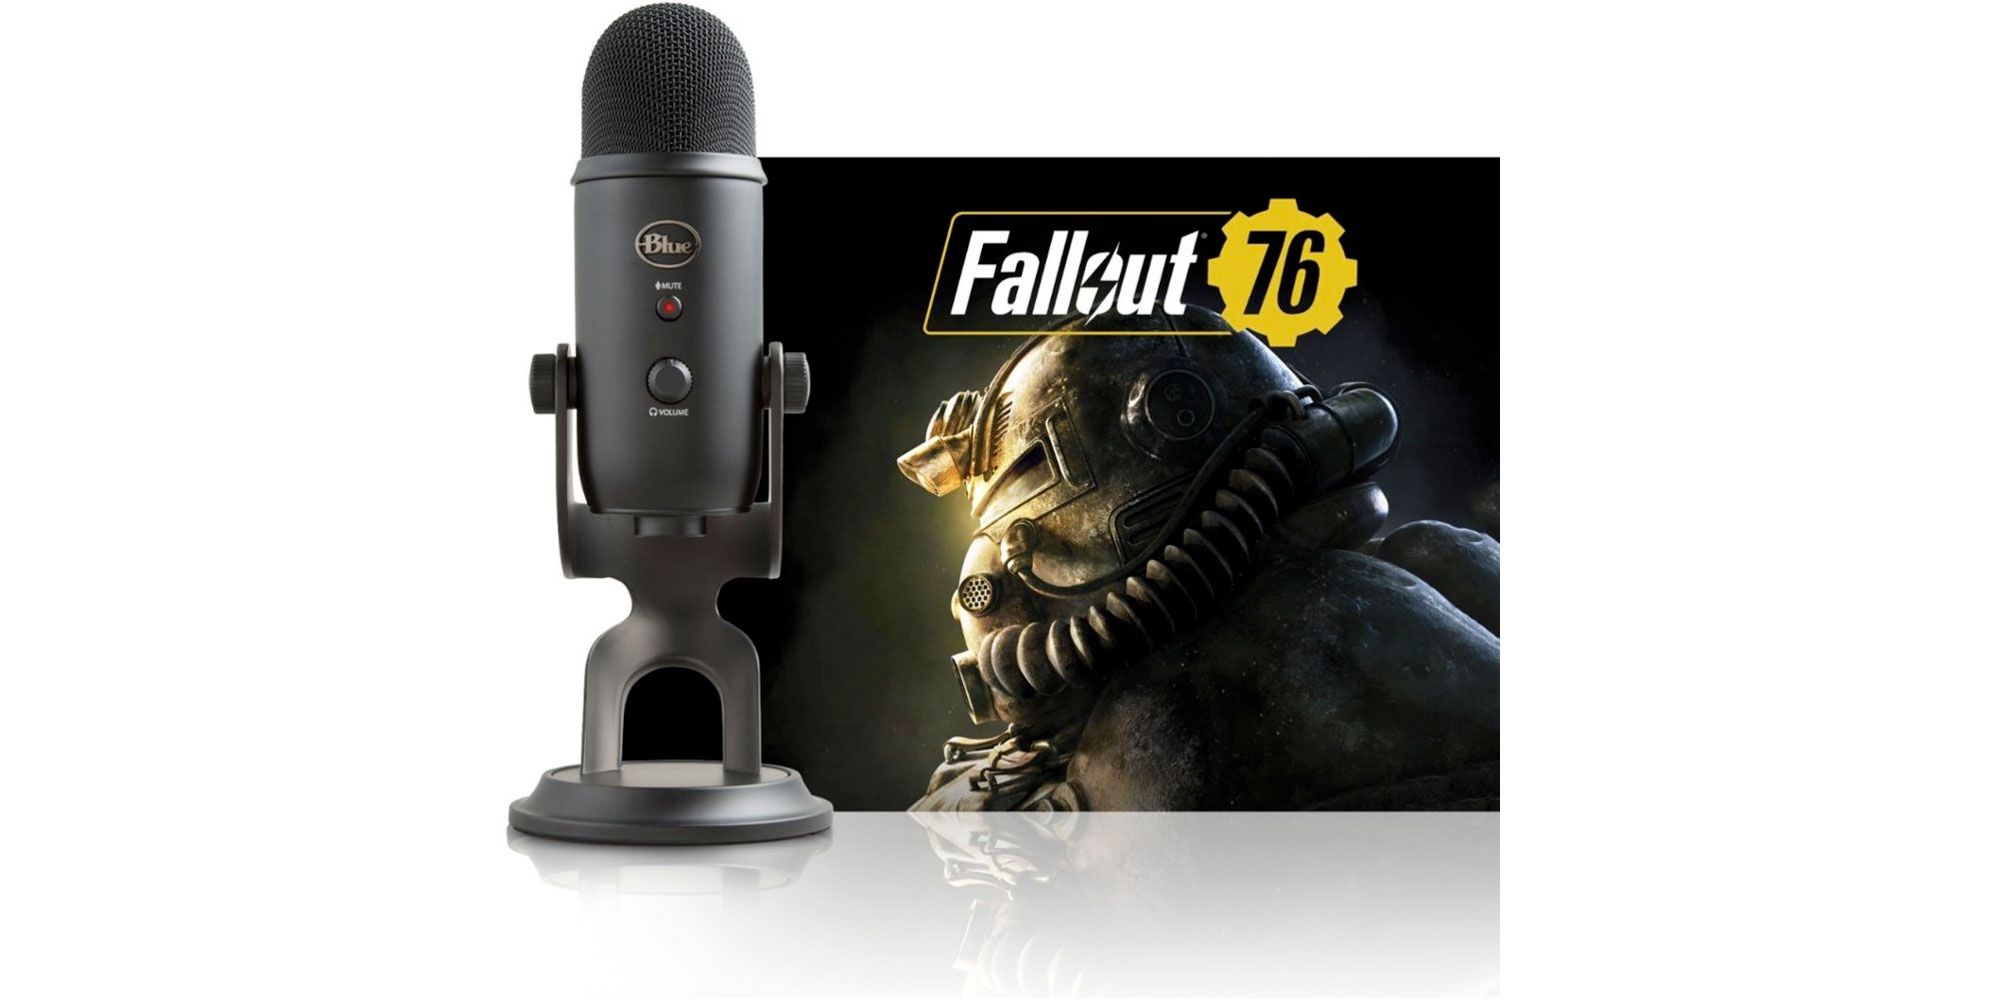 Step up your stream with Blue Yeti Blackout Mic + Fallout 76: $80 (Reg. $105+) - 9to5Toys